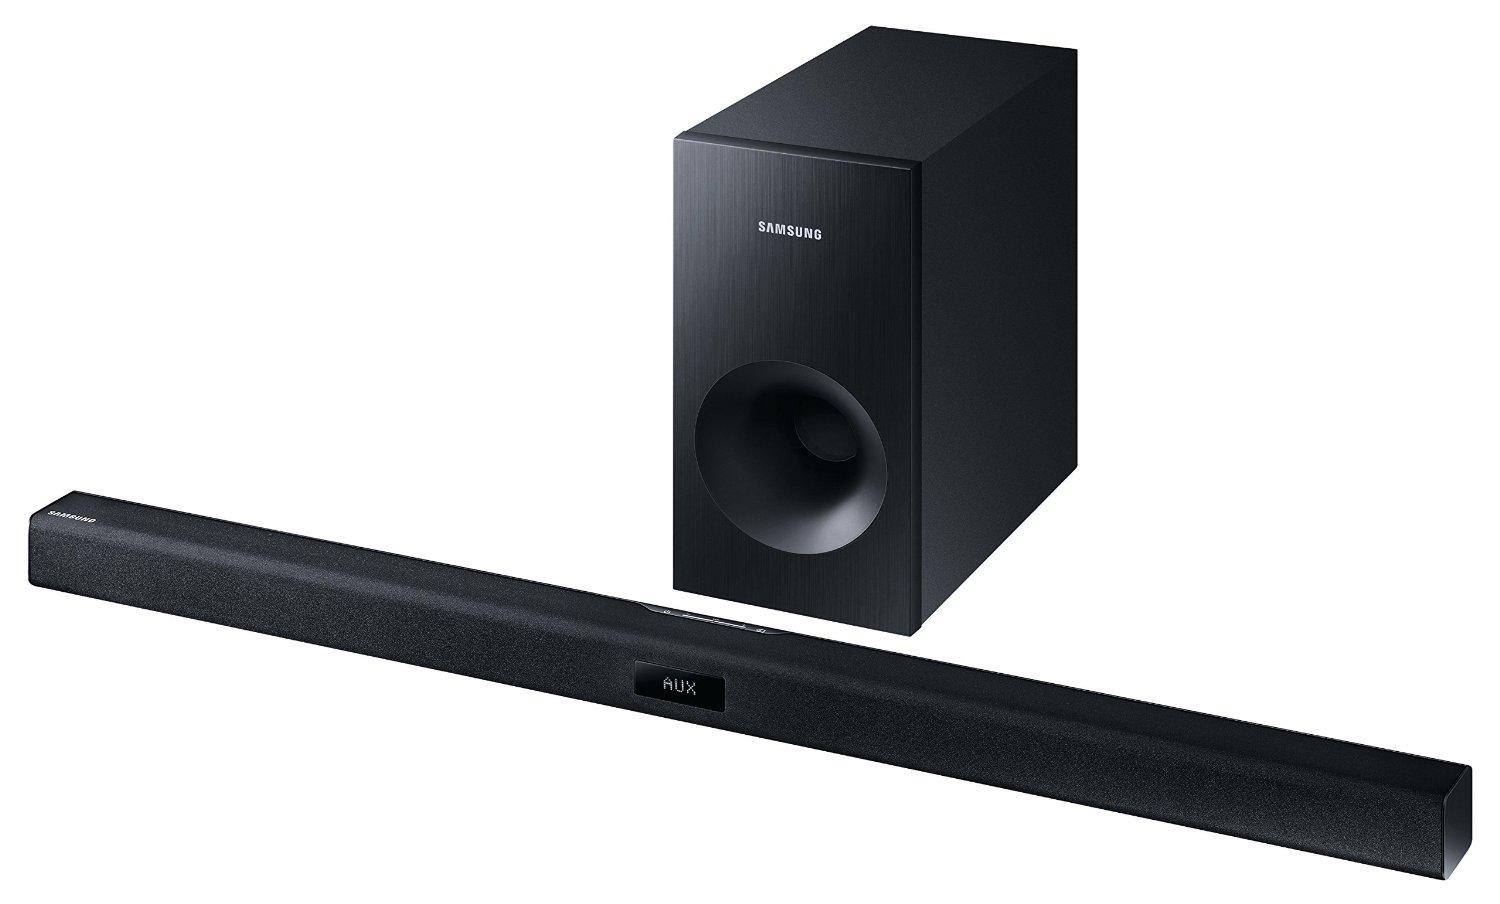 samsung hw j355 2 1 soundbar 120w passiver subwoofer bluetooth schwarz heimkino. Black Bedroom Furniture Sets. Home Design Ideas